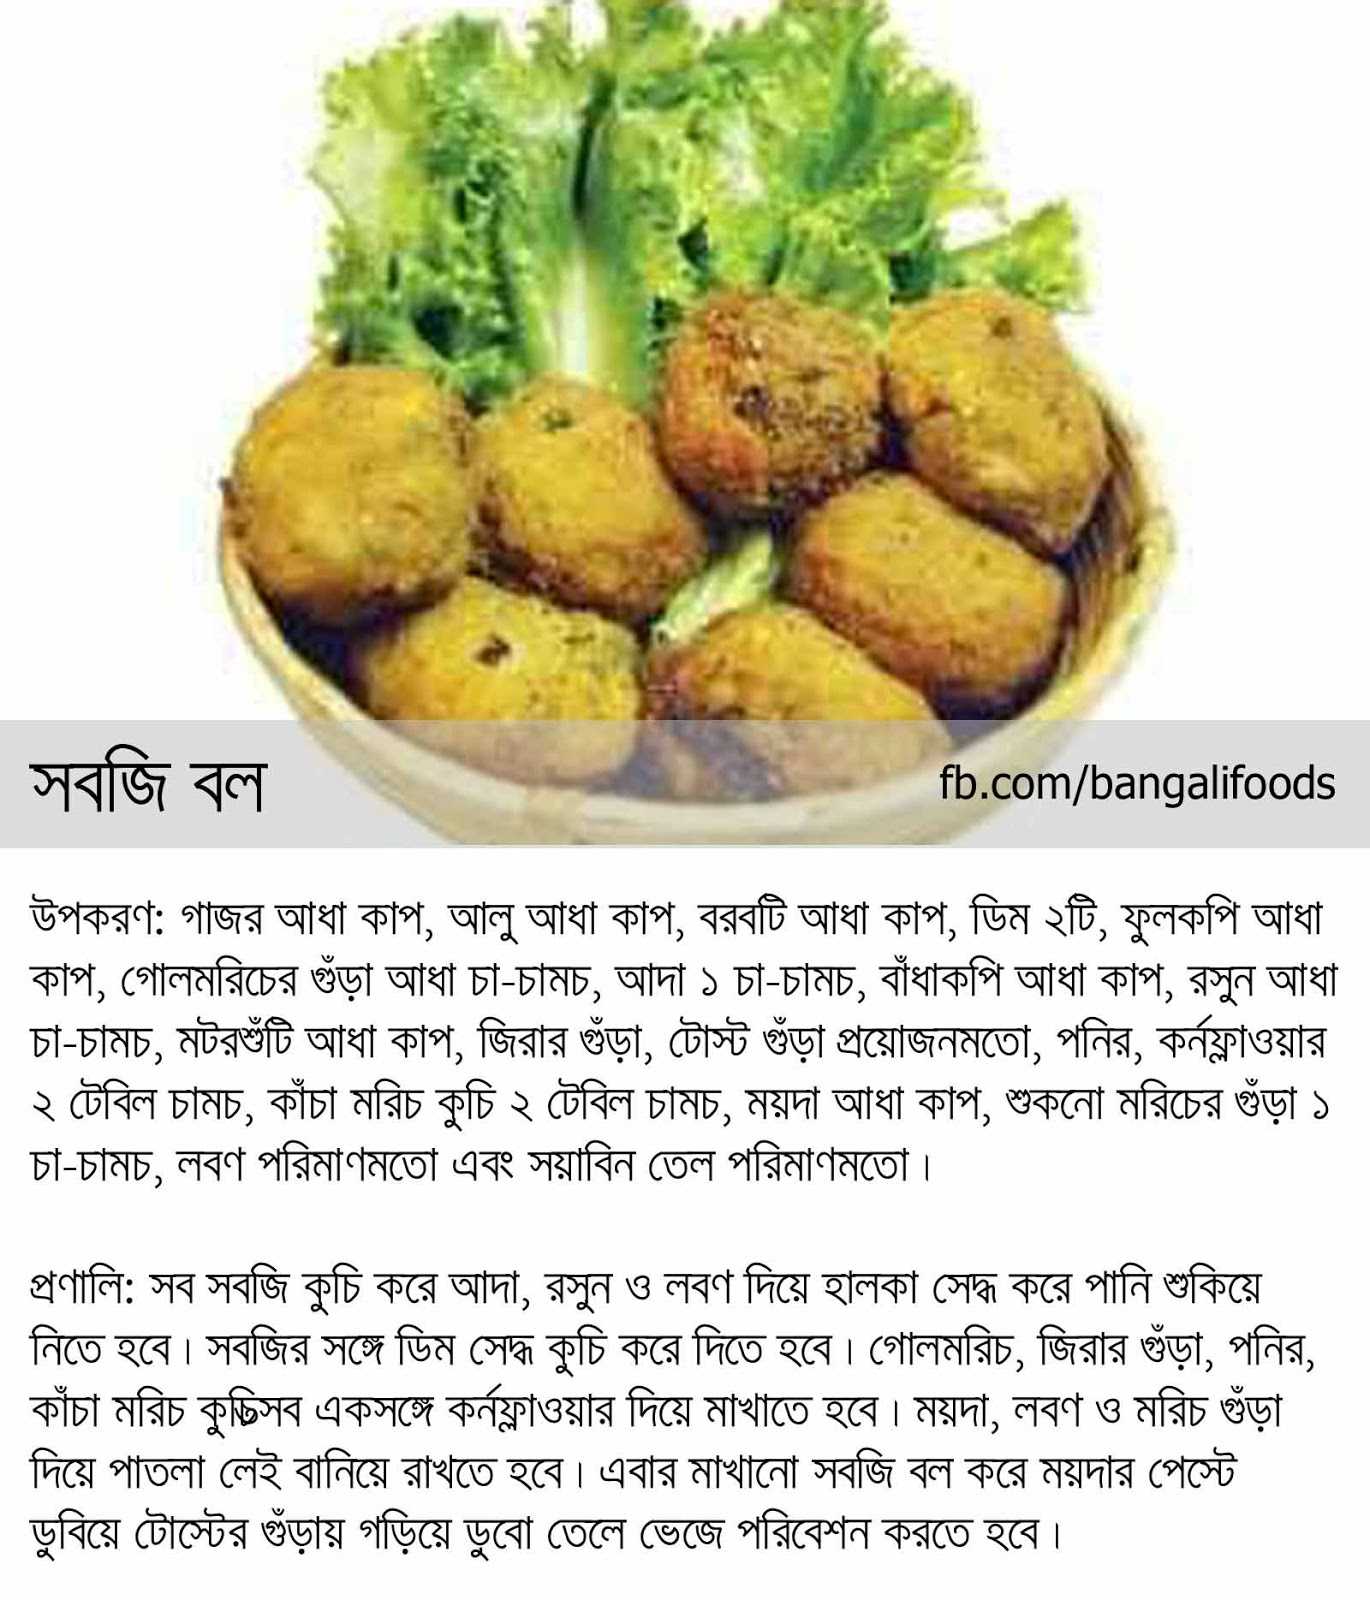 Bangali foods snack food recipes in bengali bengali recipe sobji ball forumfinder Gallery